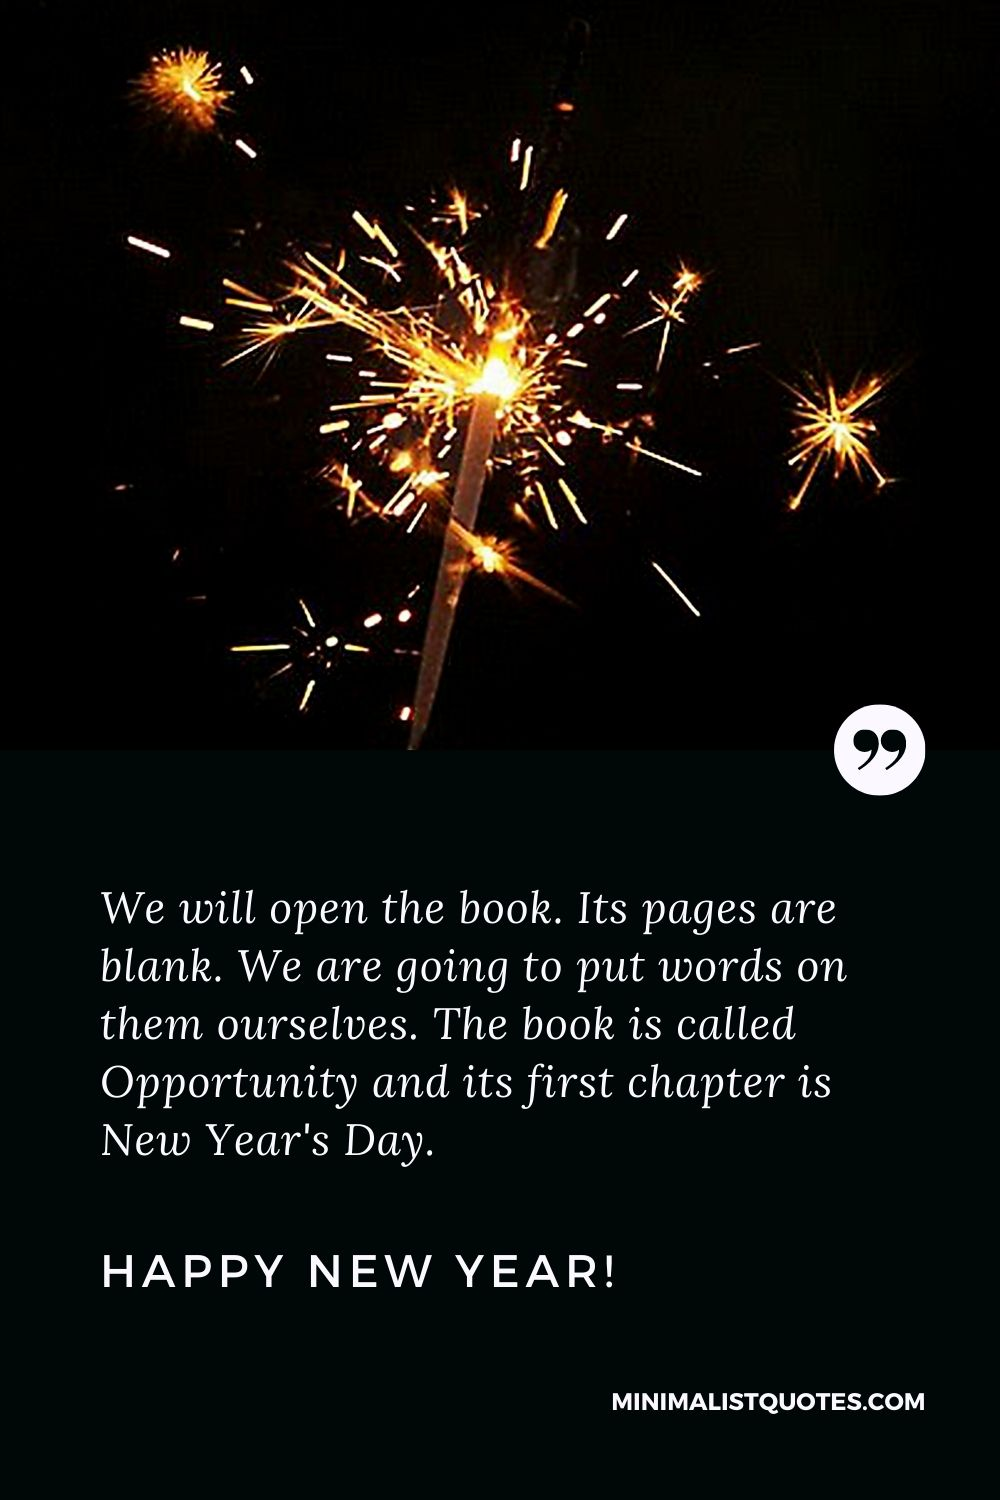 New Year Day Quote: We will open the book. Its pages are blank. We are going to put words on them ourselves. The book is called Opportunity and its first chapter is New Year's Day. Happy New Year!